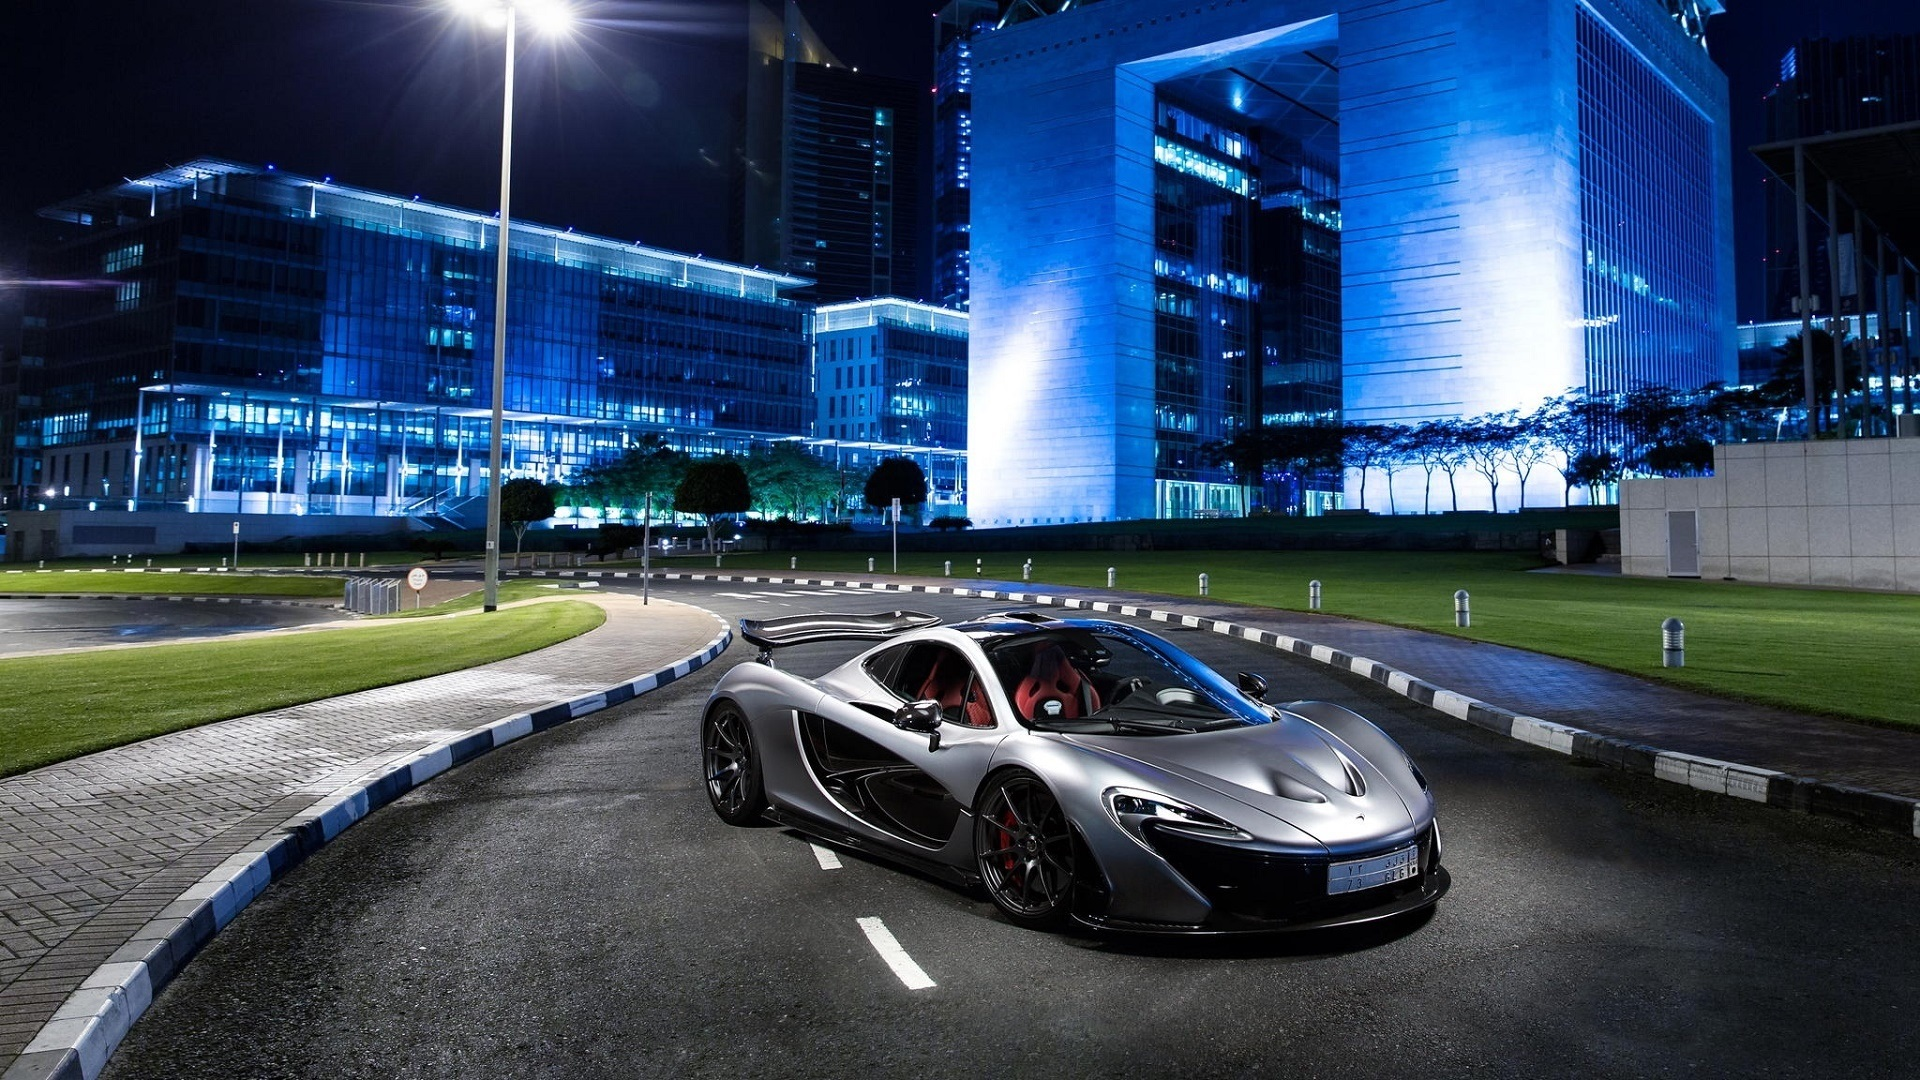 Wallpaper Mclaren P1 Silver Supercar At City Night 1920x1080 Full Hd 2k Picture Image